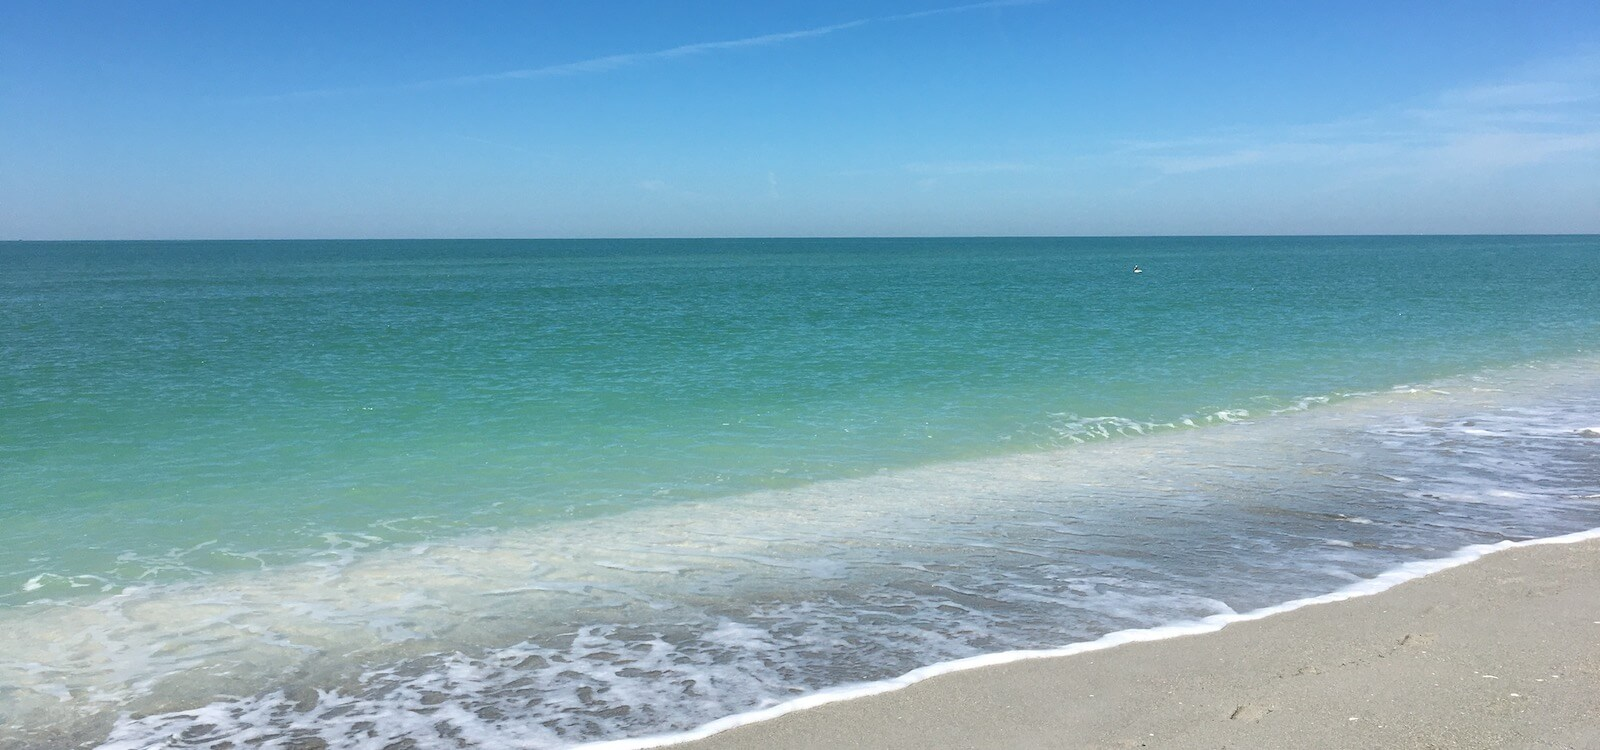 Turquoise water and white sand beach Gulf of Mexico southwest Florida. Must Do Visitor Guides | MustDo.com